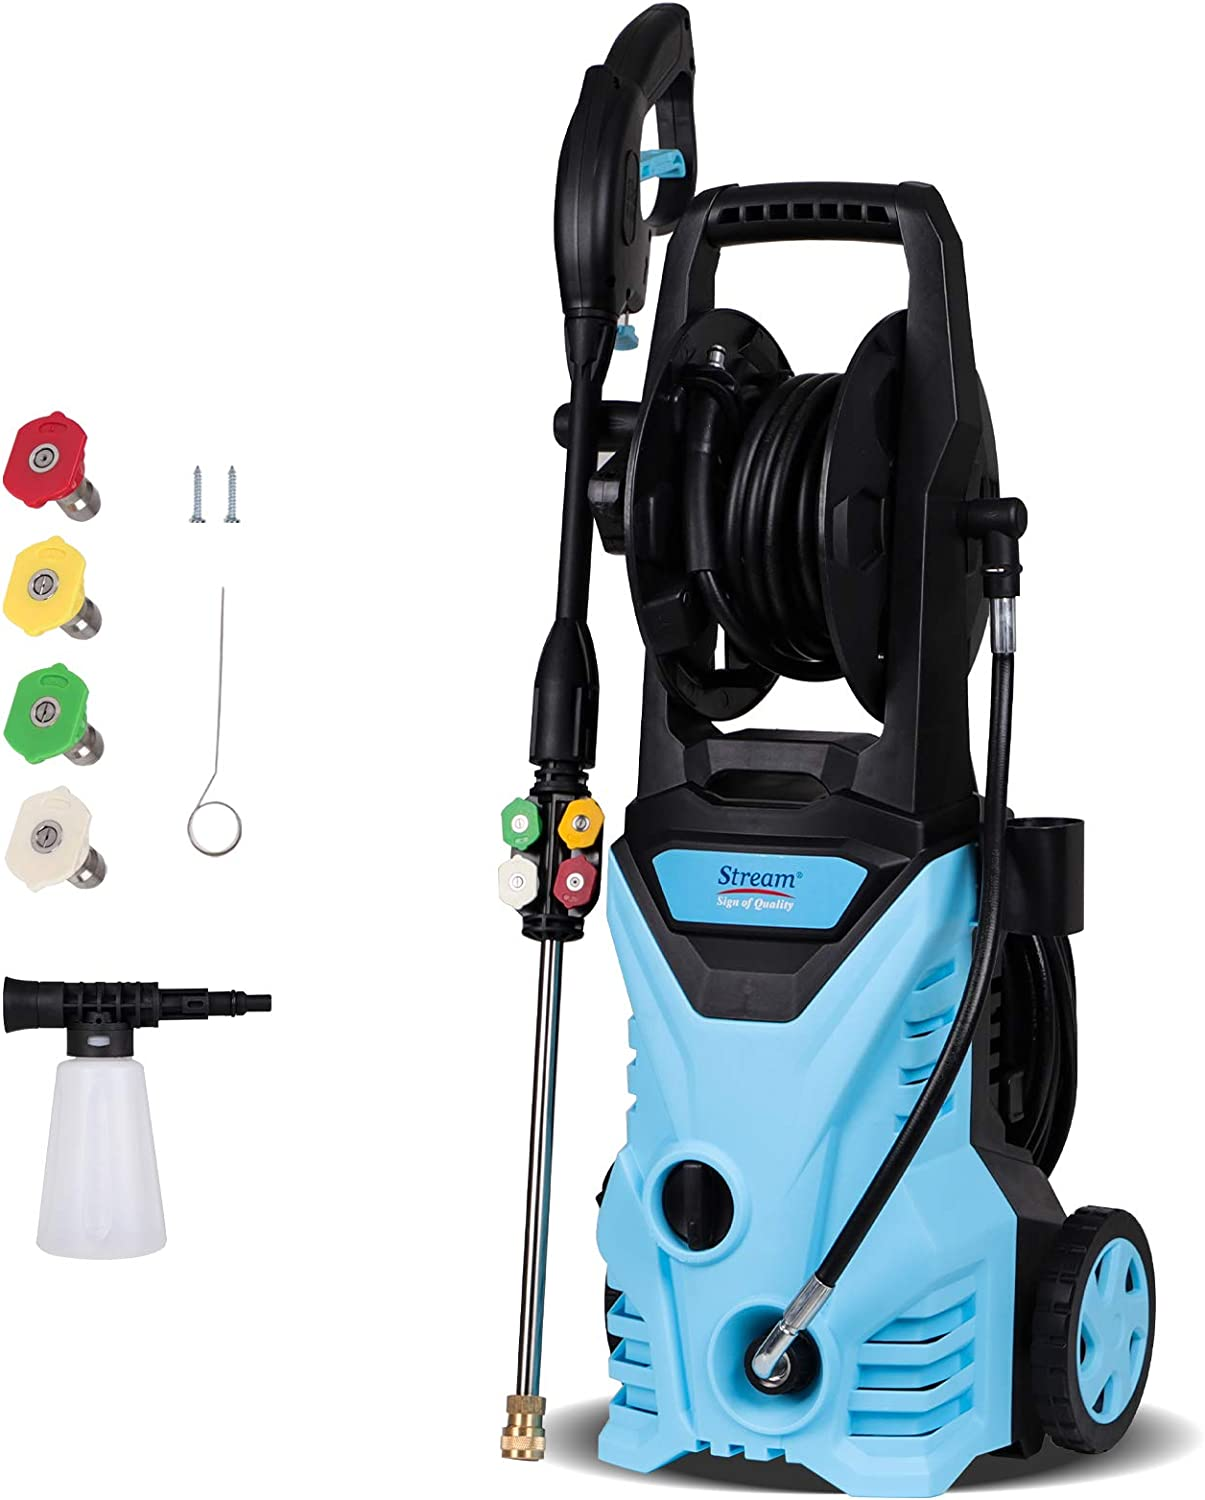 2850PSI Pressure Washer, 1650W Electric Power Washer, 1.7GPM High Pressure Cleaner with Spray Gun, 5 Nozzle Adapter and 20ft Hose for Cleaning Homes, Cars, Driveways, Patios (Blue)